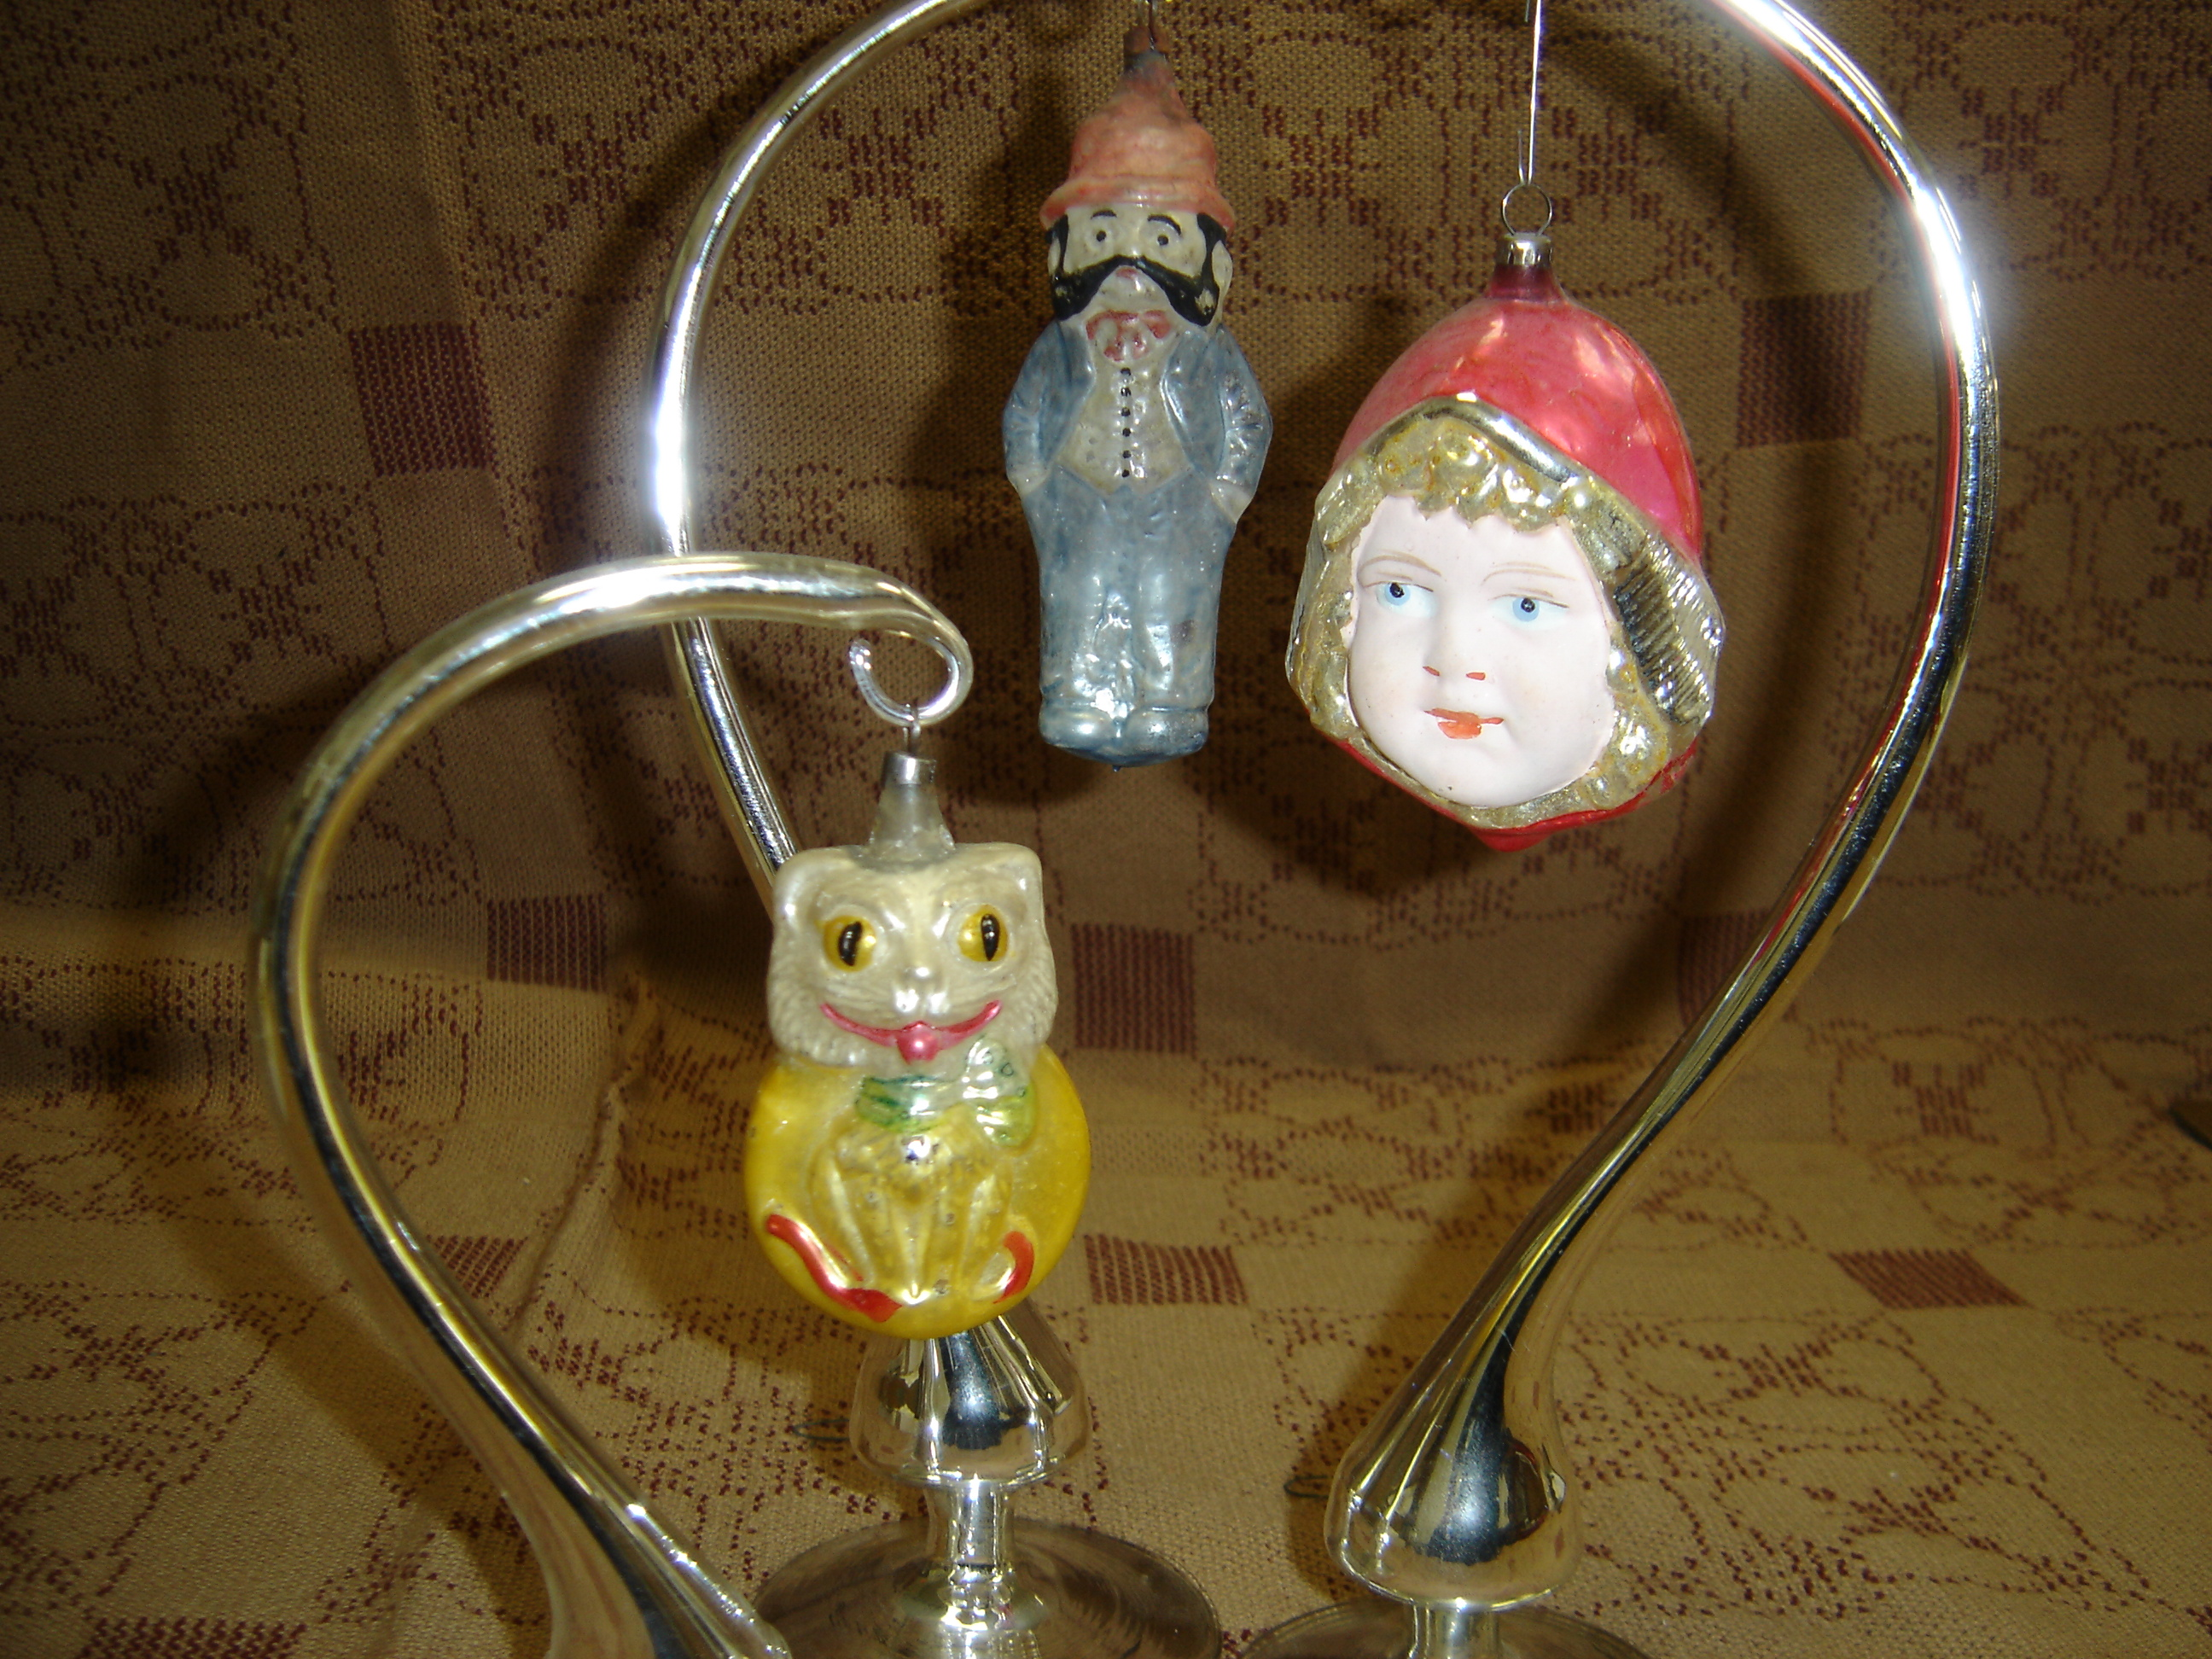 Early blown glass, hand-painted ornaments from Elves Antiques